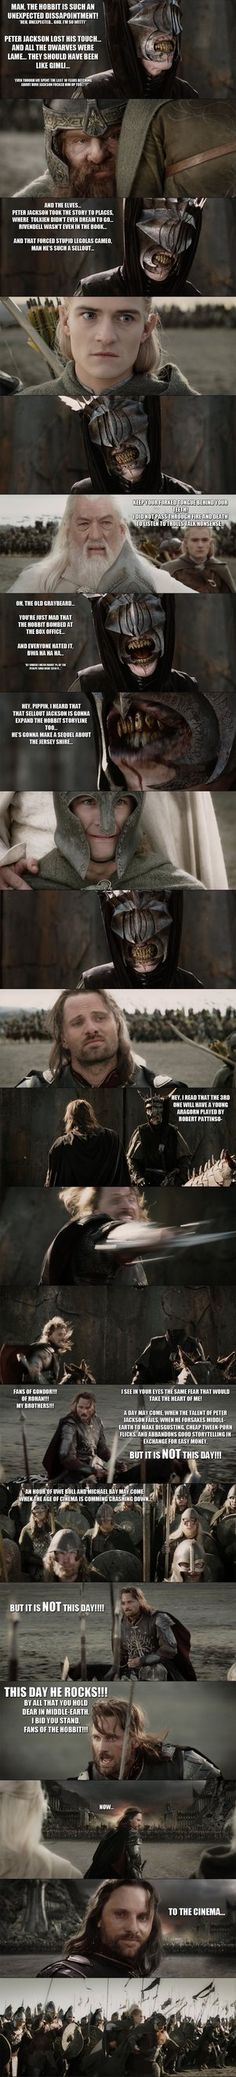 The Hobbit - Aragorn vs the Troll of Sauron... by yourparodies  http://yourparodies.deviantart.com